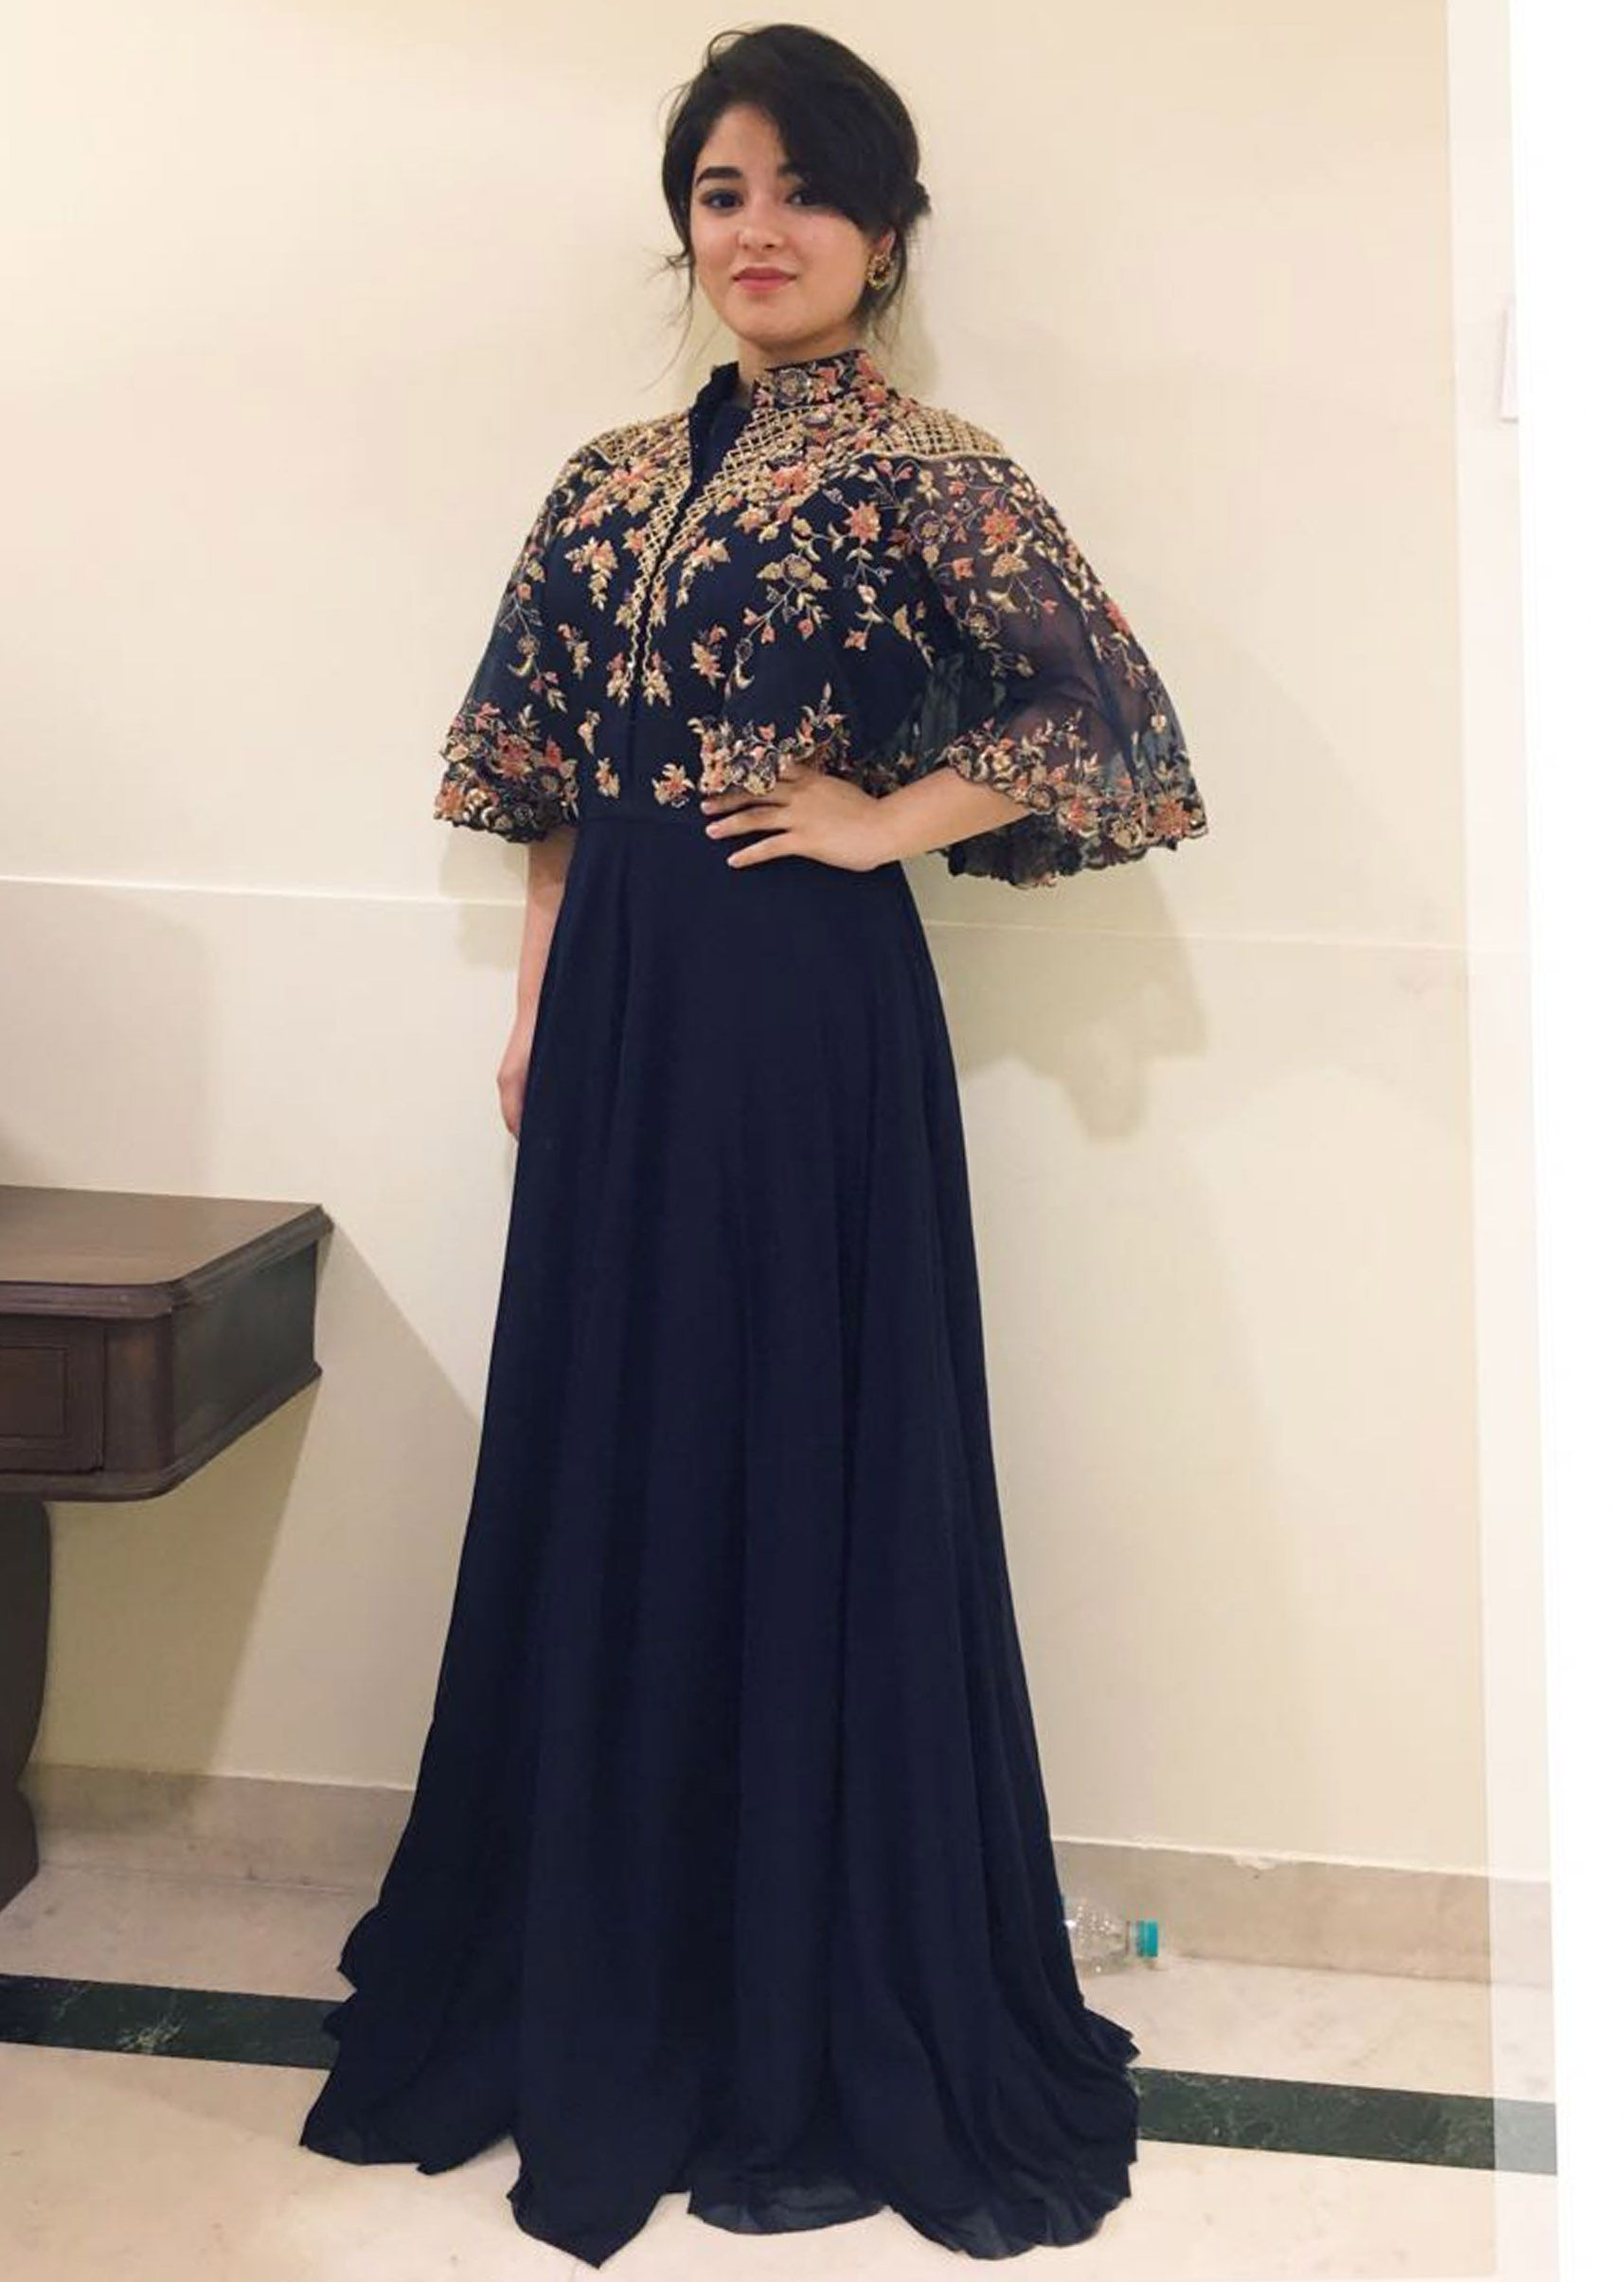 c33043cc1ee Laadesar Zaira Wasim In Kalki Dress In Lycra With Fancy Cape Sleeve Call or  Whatsapp on +91-8290247050 or visit insta page WOMN CLOTHING. we are  designer ...